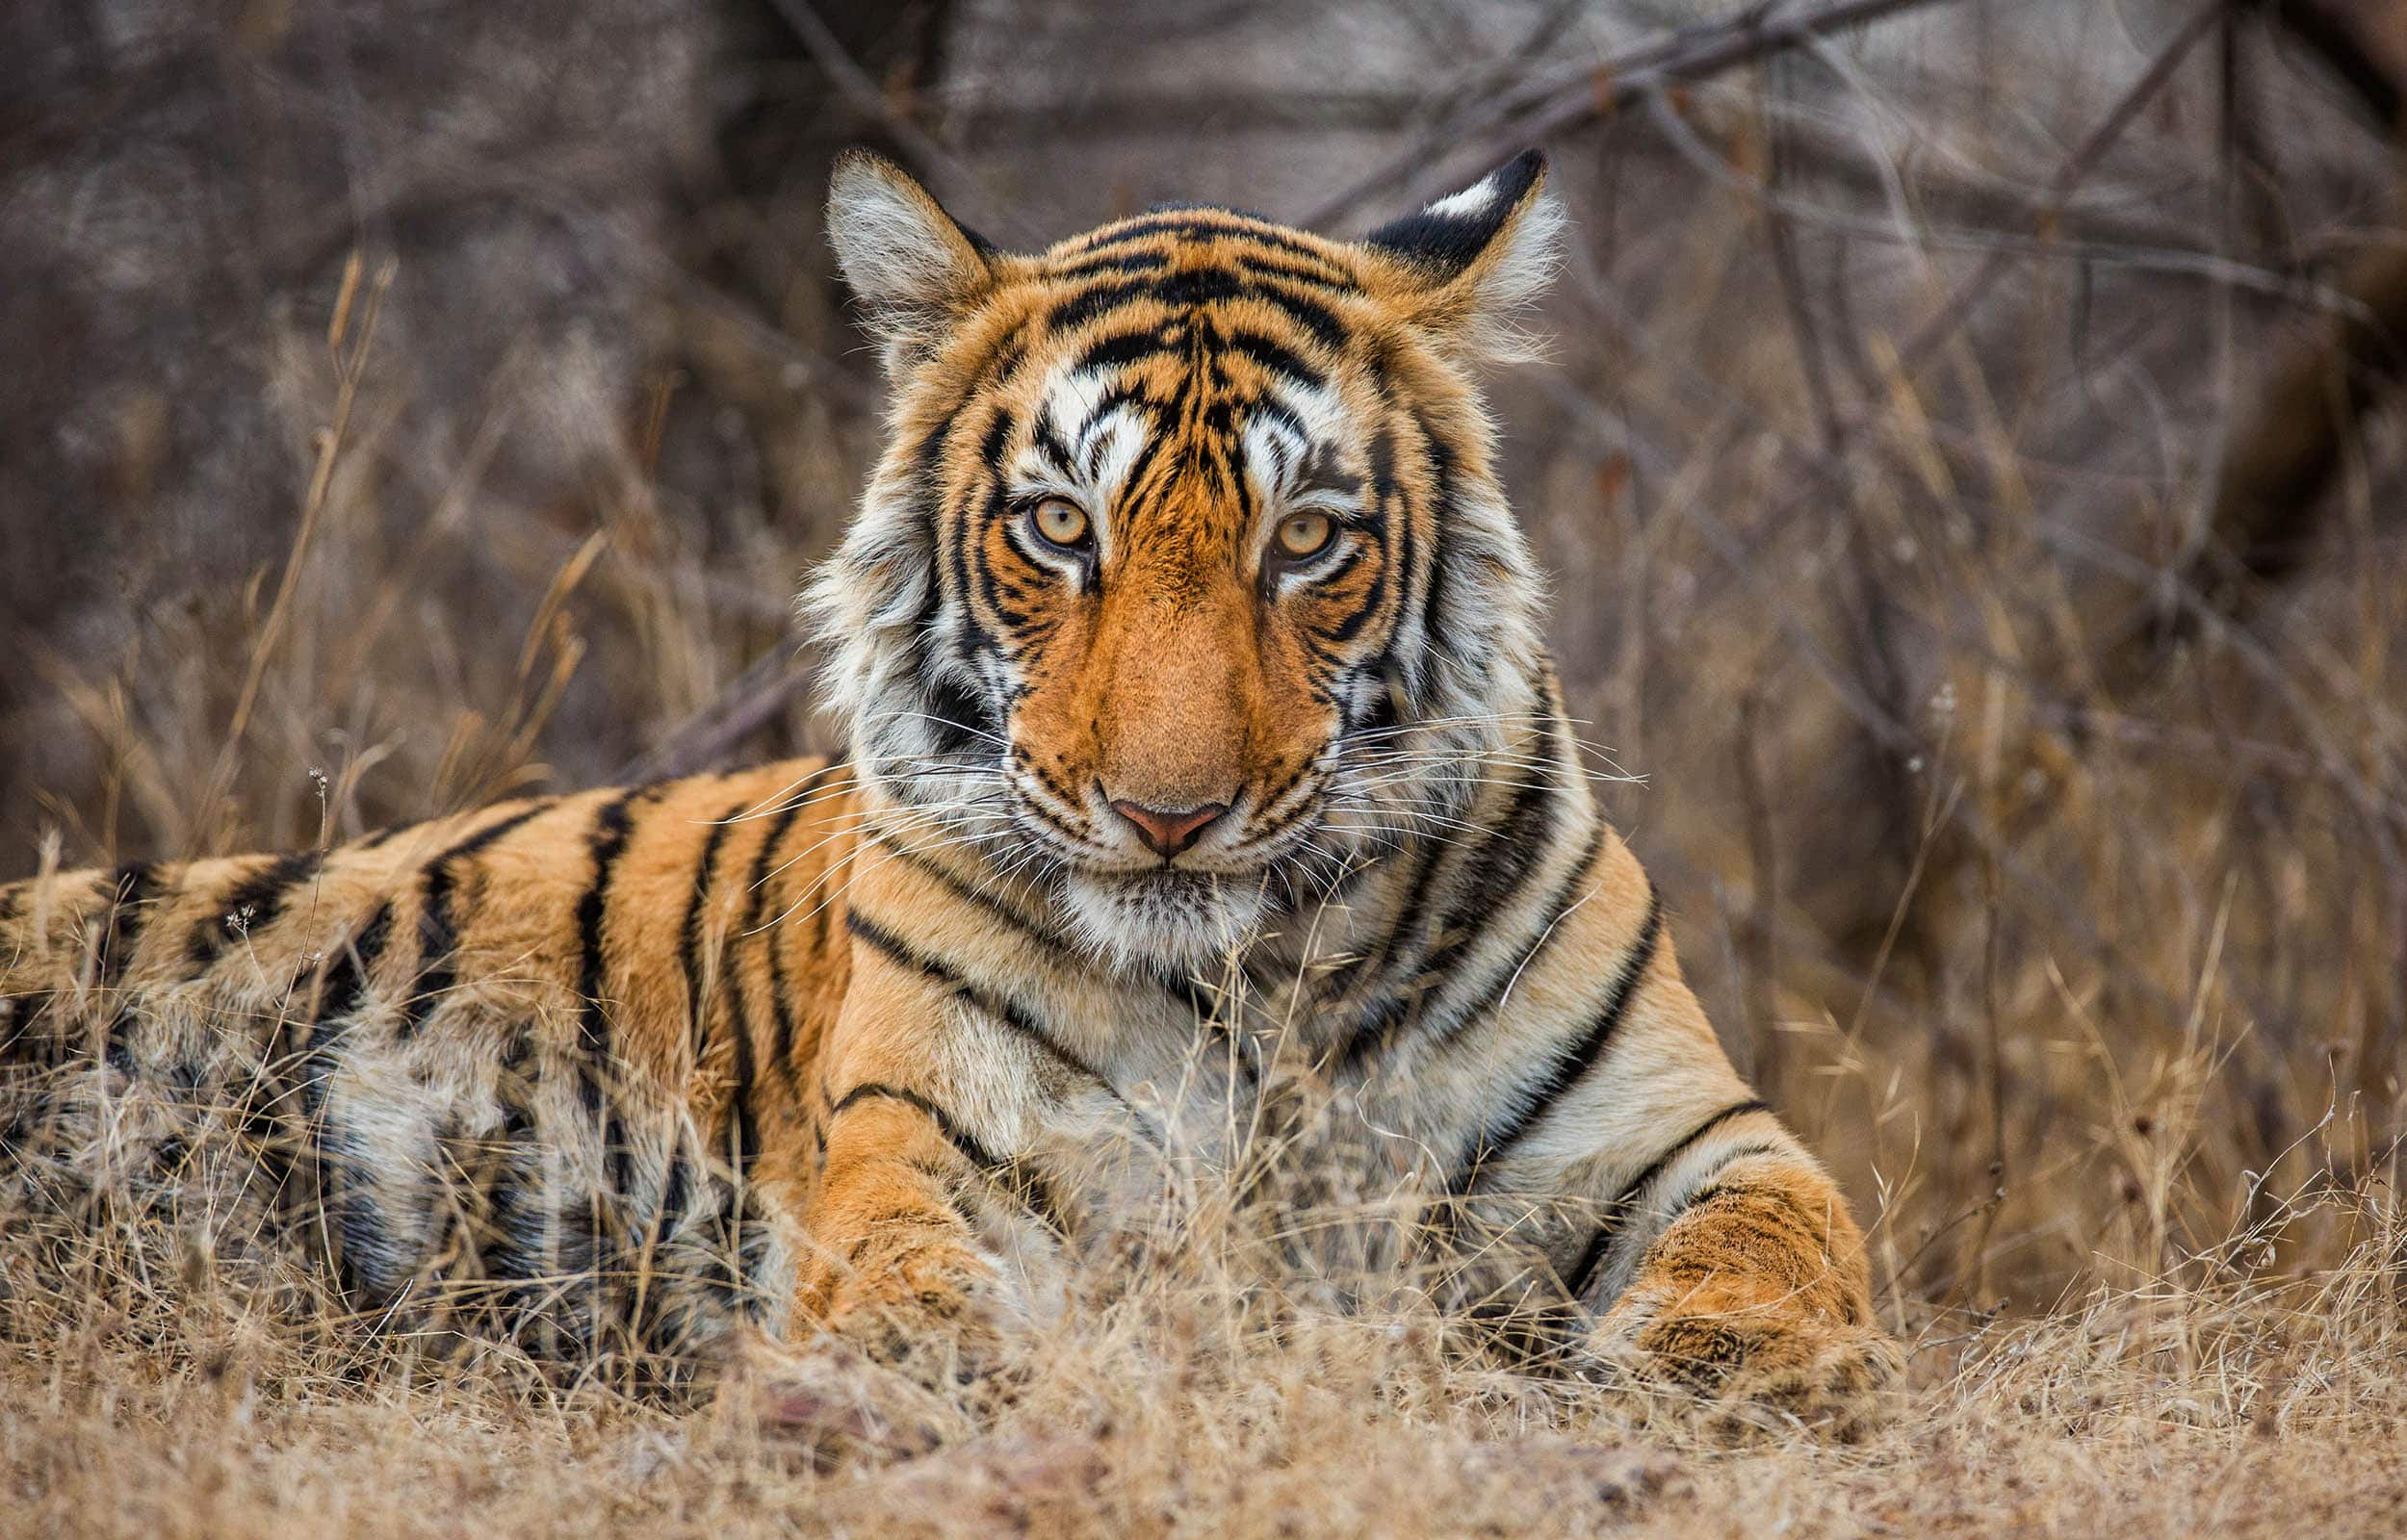 Voyage train Inde - tigre - Parc National Ranthambore